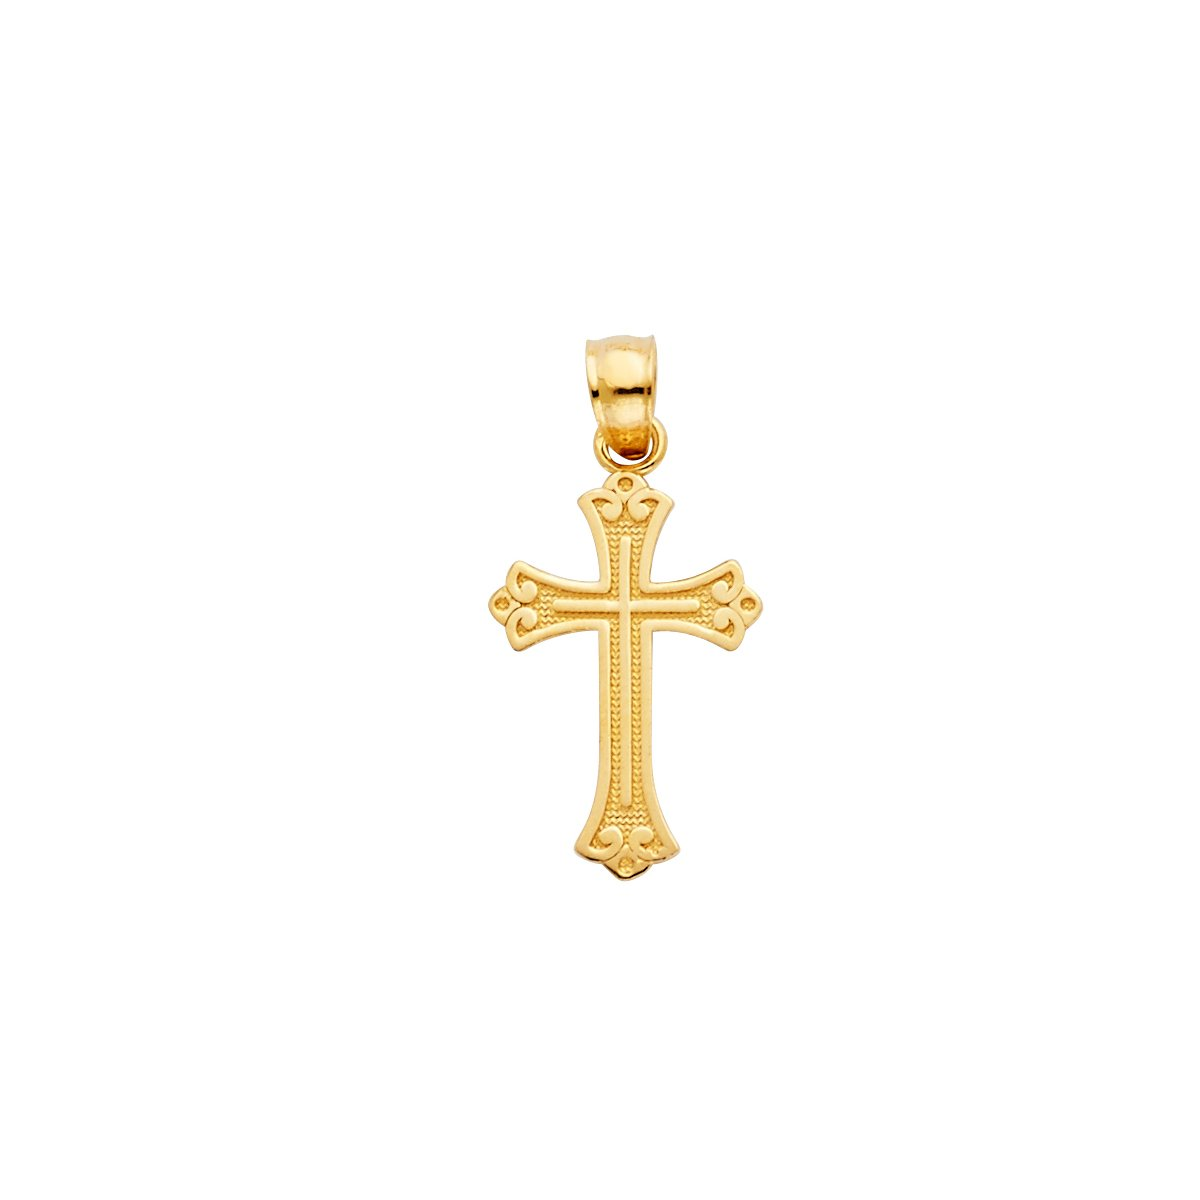 Weight 0.8 Grams TGDJ 14k Yellow Gold Cross Religious Pendant Height 18 MM Width 13 MM Avg